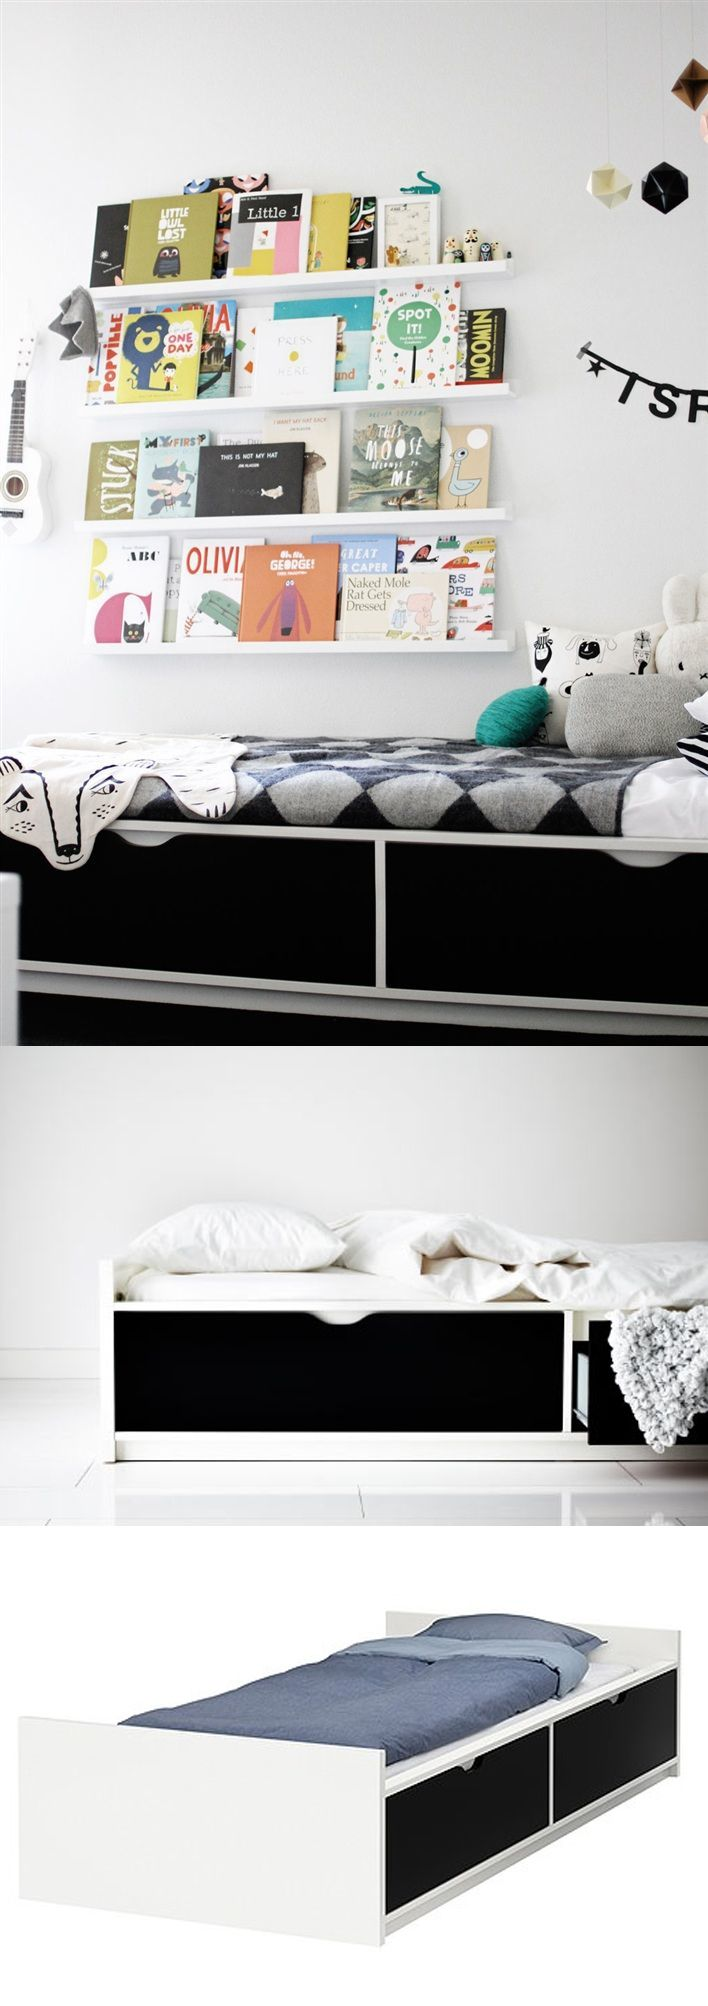 Ikea Teppich Polypropylen Schadstoffe ~ Flaxa Bed Frame With Storage Ikea The 2 Large Drawers Give You An